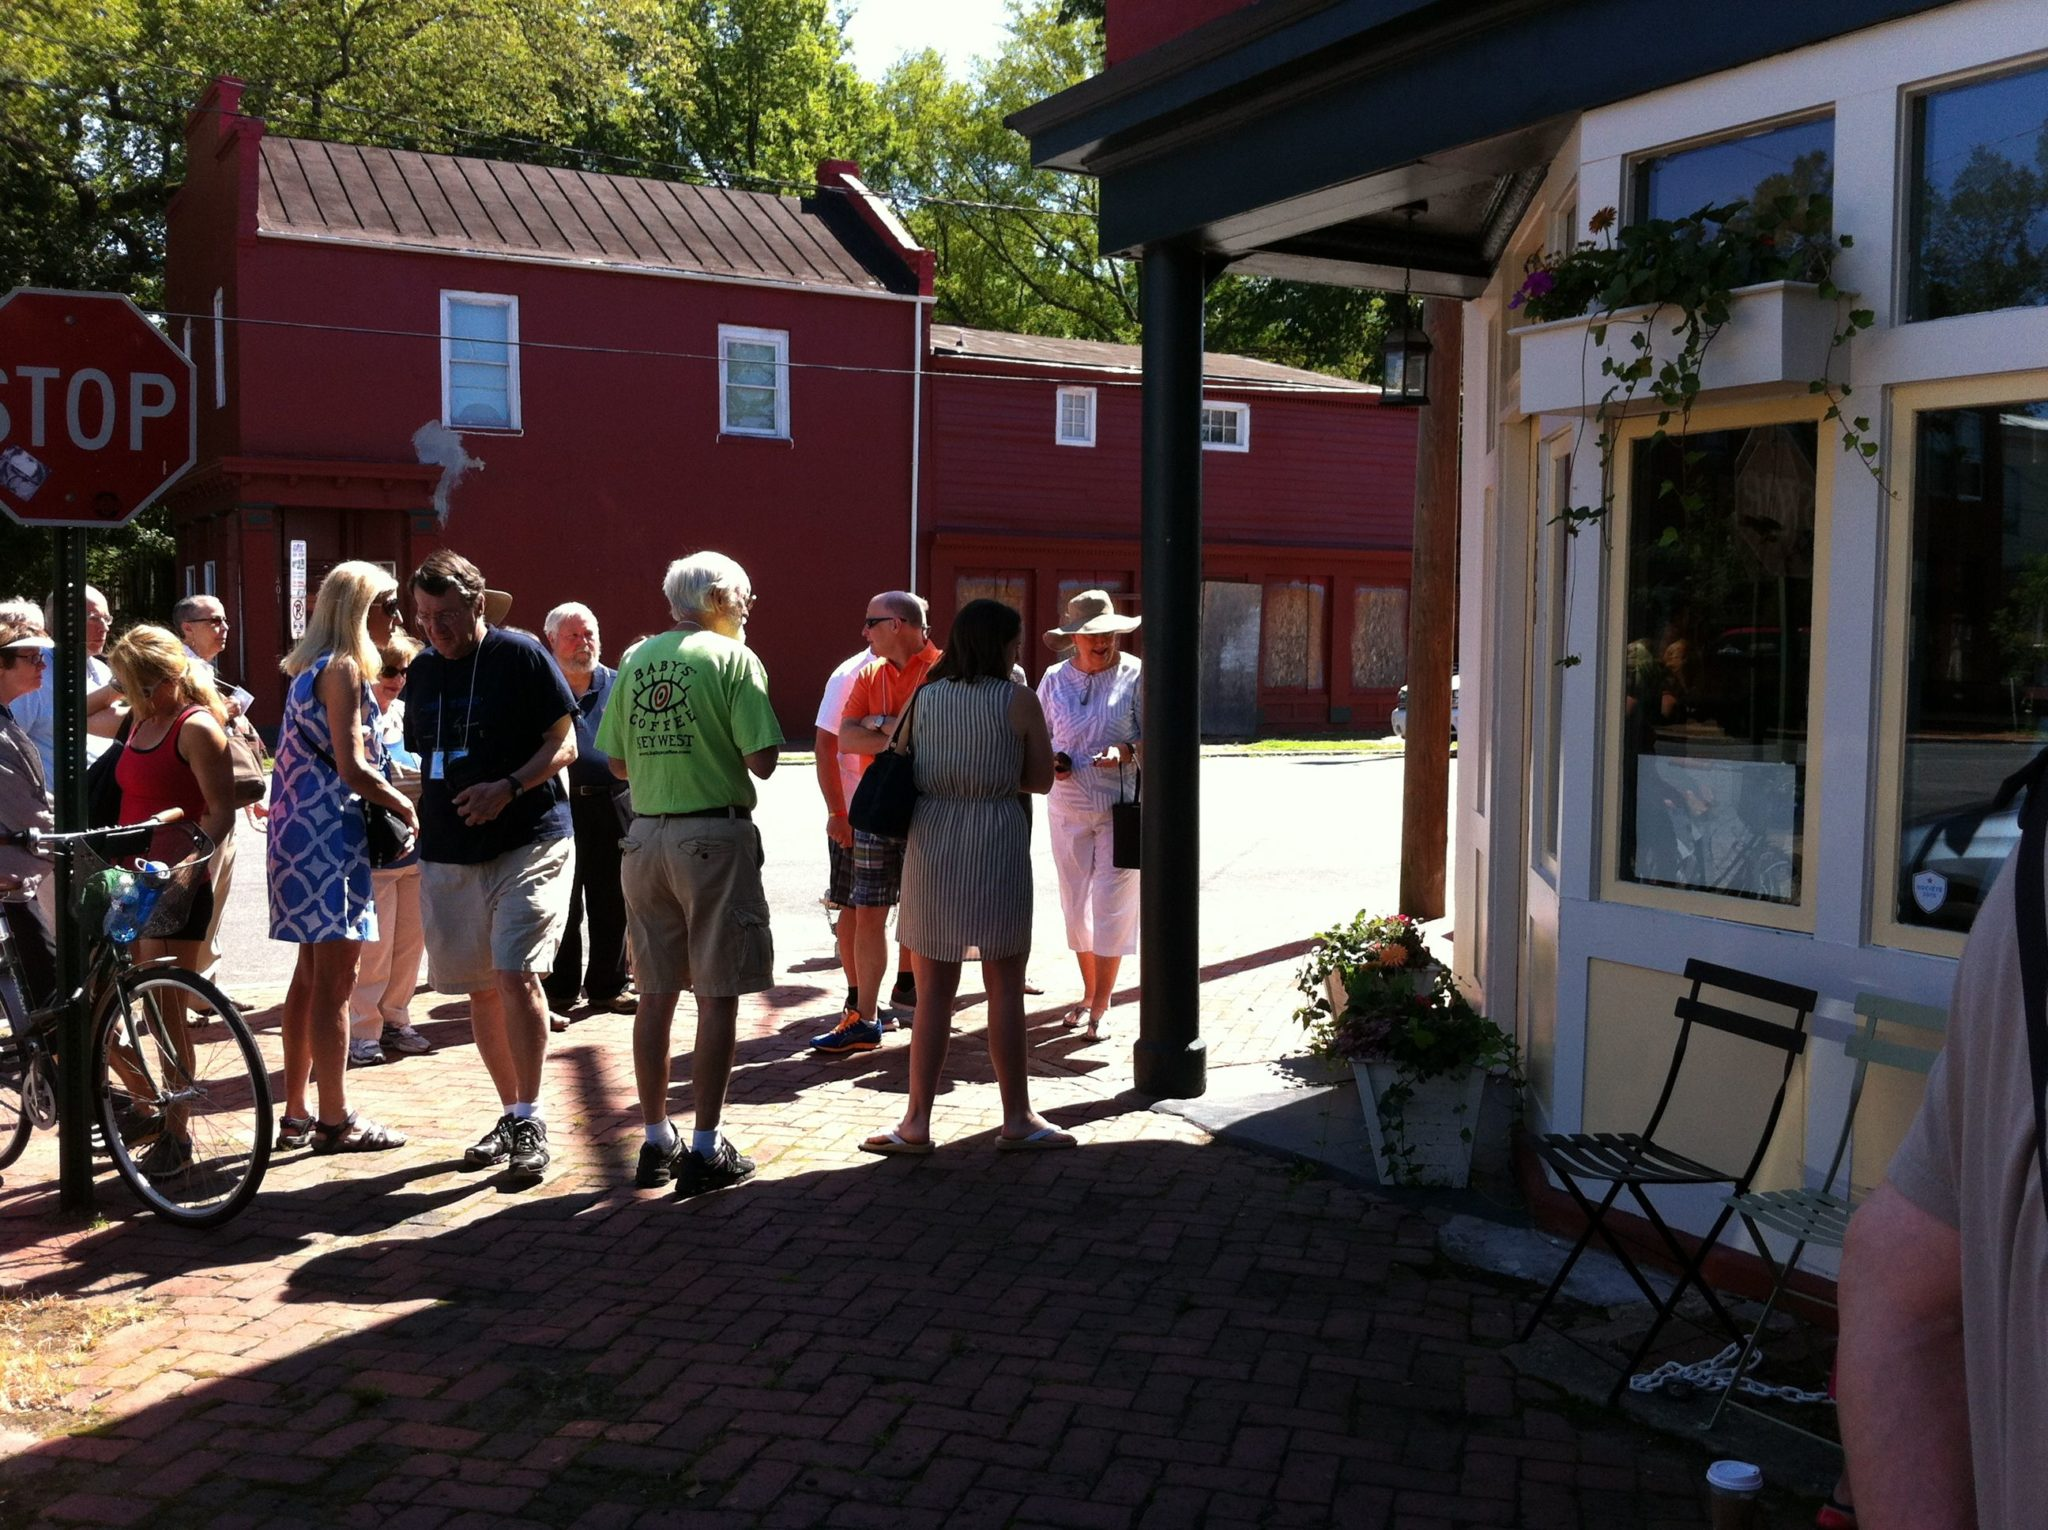 Bakery walking tour group exploring Richmond Virginia on a sunny summer morning